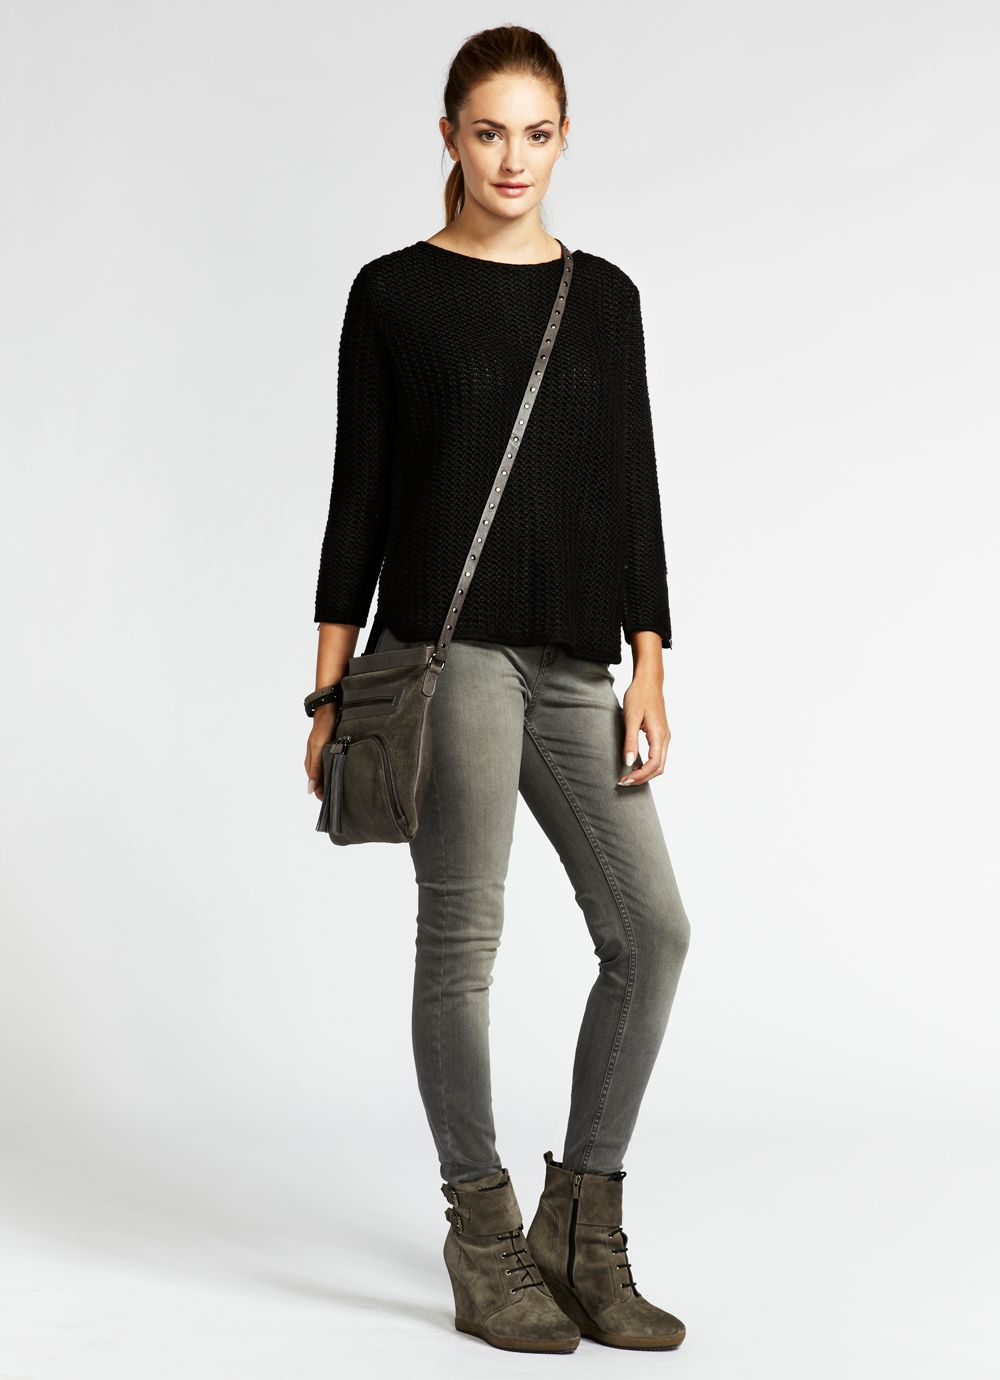 Black zip back boxy knit